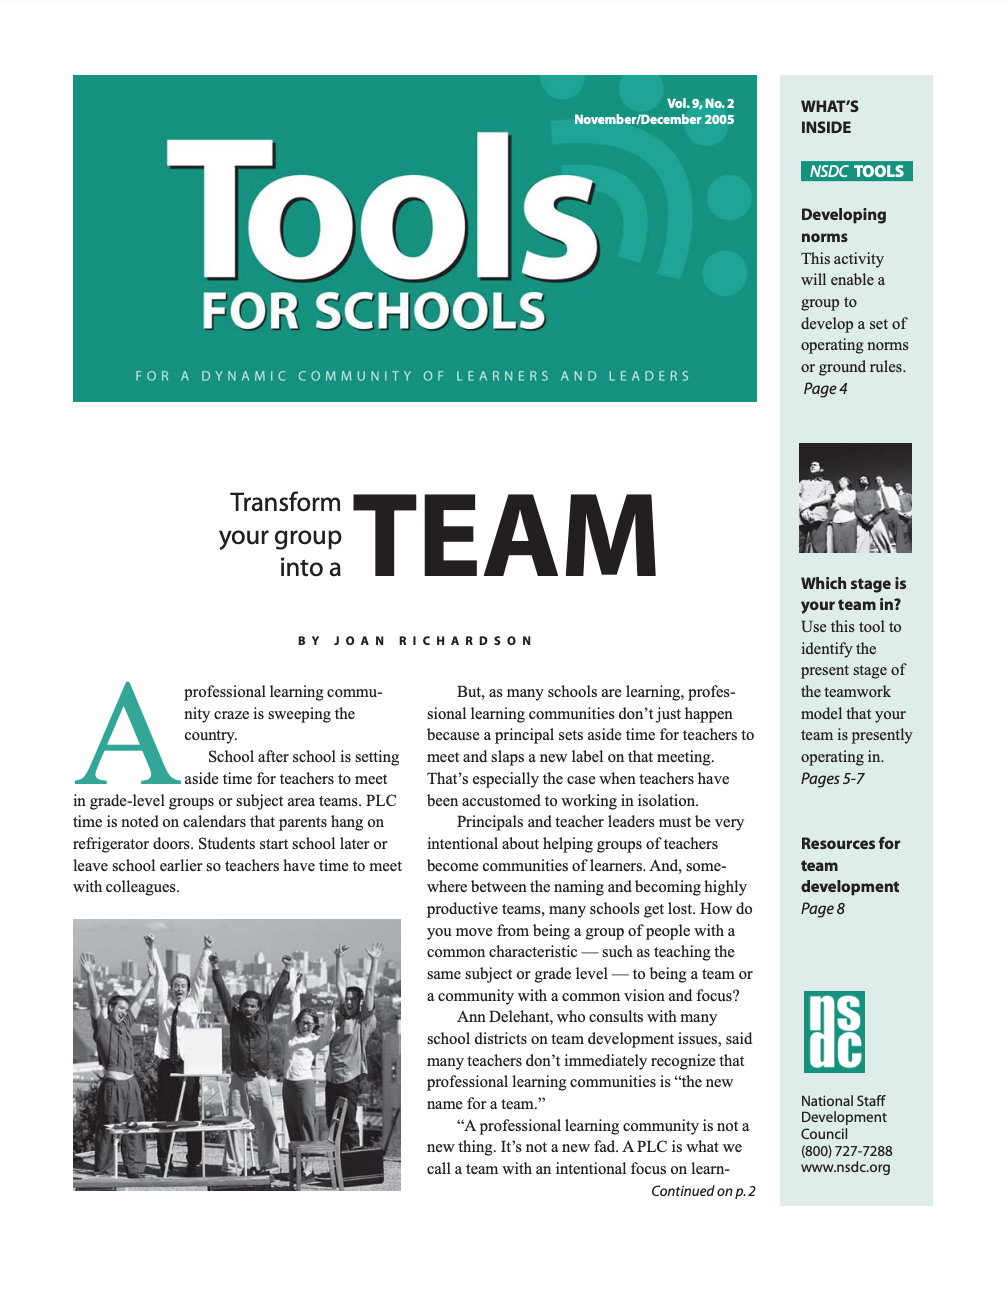 tools-for-schools-november-december-2005-vol-9-no-2